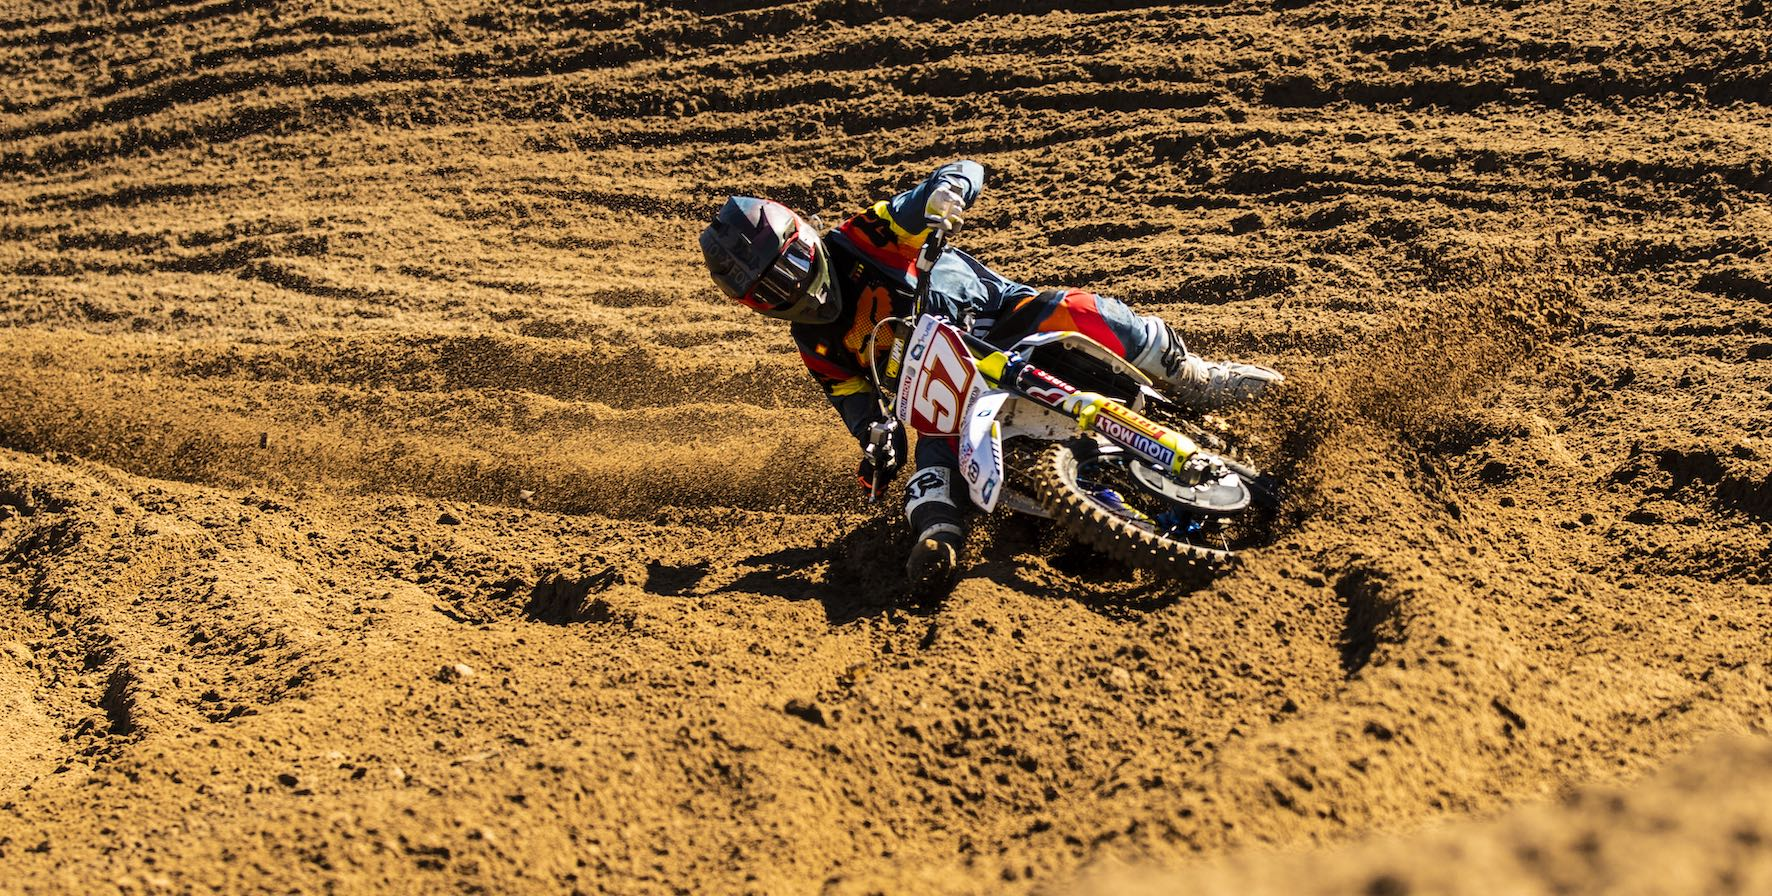 Maddy Malan racing round 2 of the 2019 MX Nationals